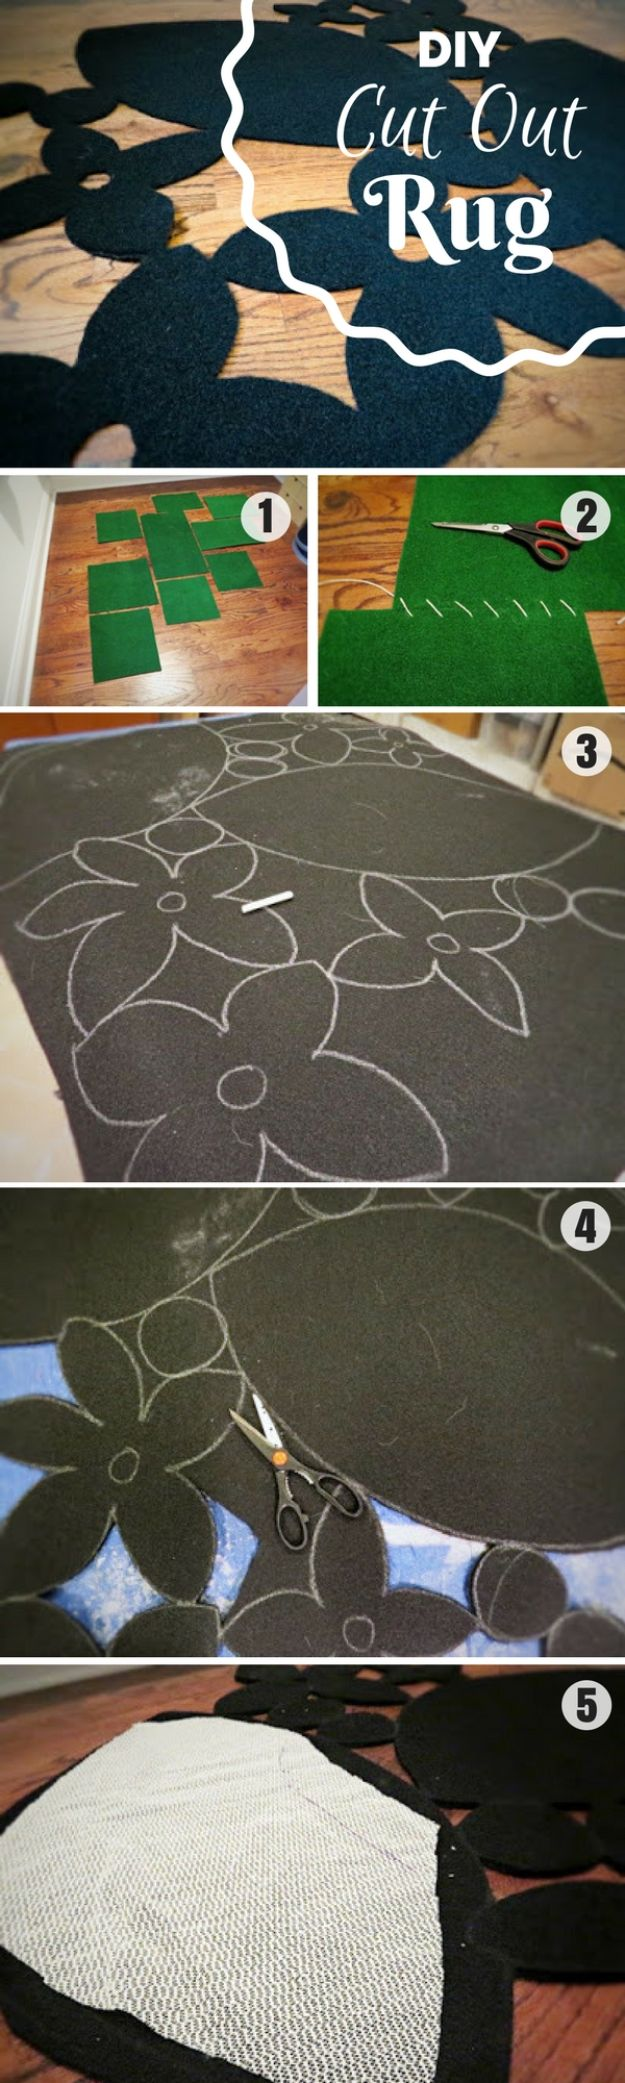 DIY Rugs - DIY Cut-Out Rug - Ideas for An Easy Handmade Rug for Living Room, Bedroom, Kitchen Mat and Cheap Area Rugs You Can Make - Stencil Art Tutorial, Painting Tips, Fabric, Yarn, Old Denim Jeans, Rope, Tshirt, Pom Pom, Fur, Crochet, Woven and Outdoor Projects - Large and Small Carpet #diyrugs #diyhomedecor